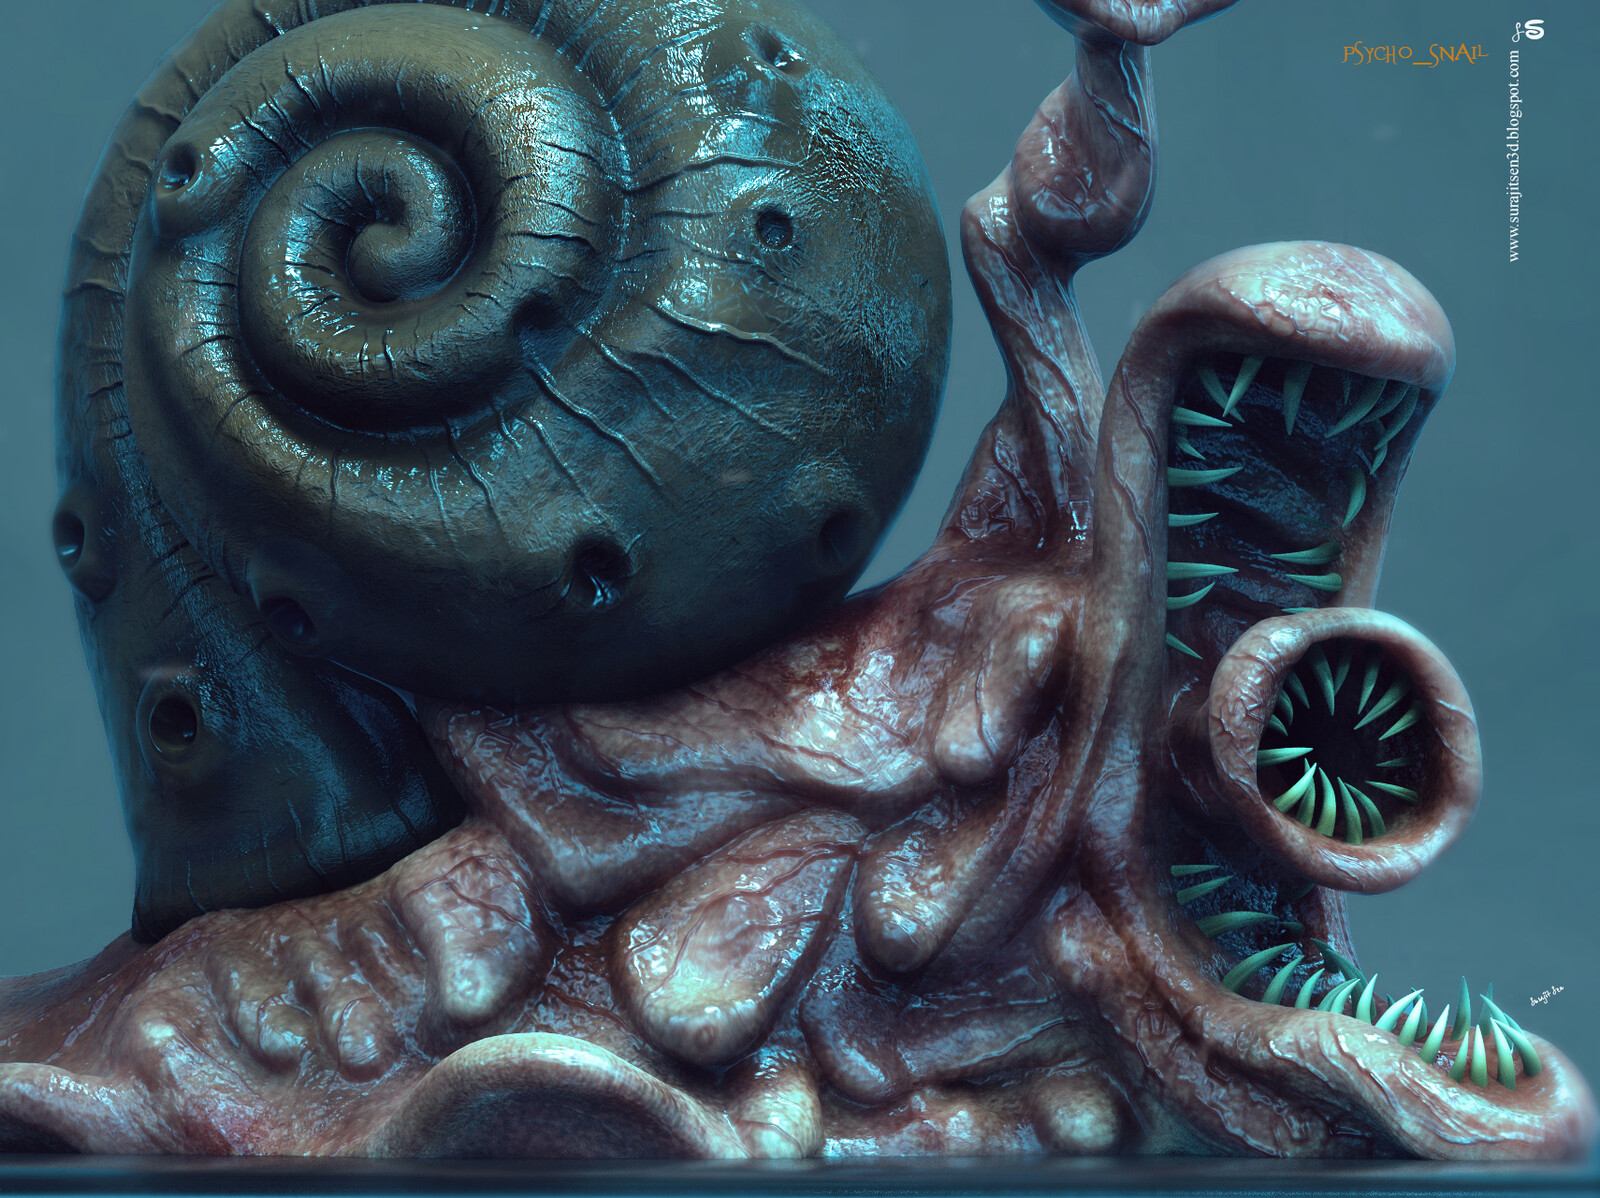 Psycho_Snail2.0 One of my study works... Updated version. Background music- #hanszimmermusic